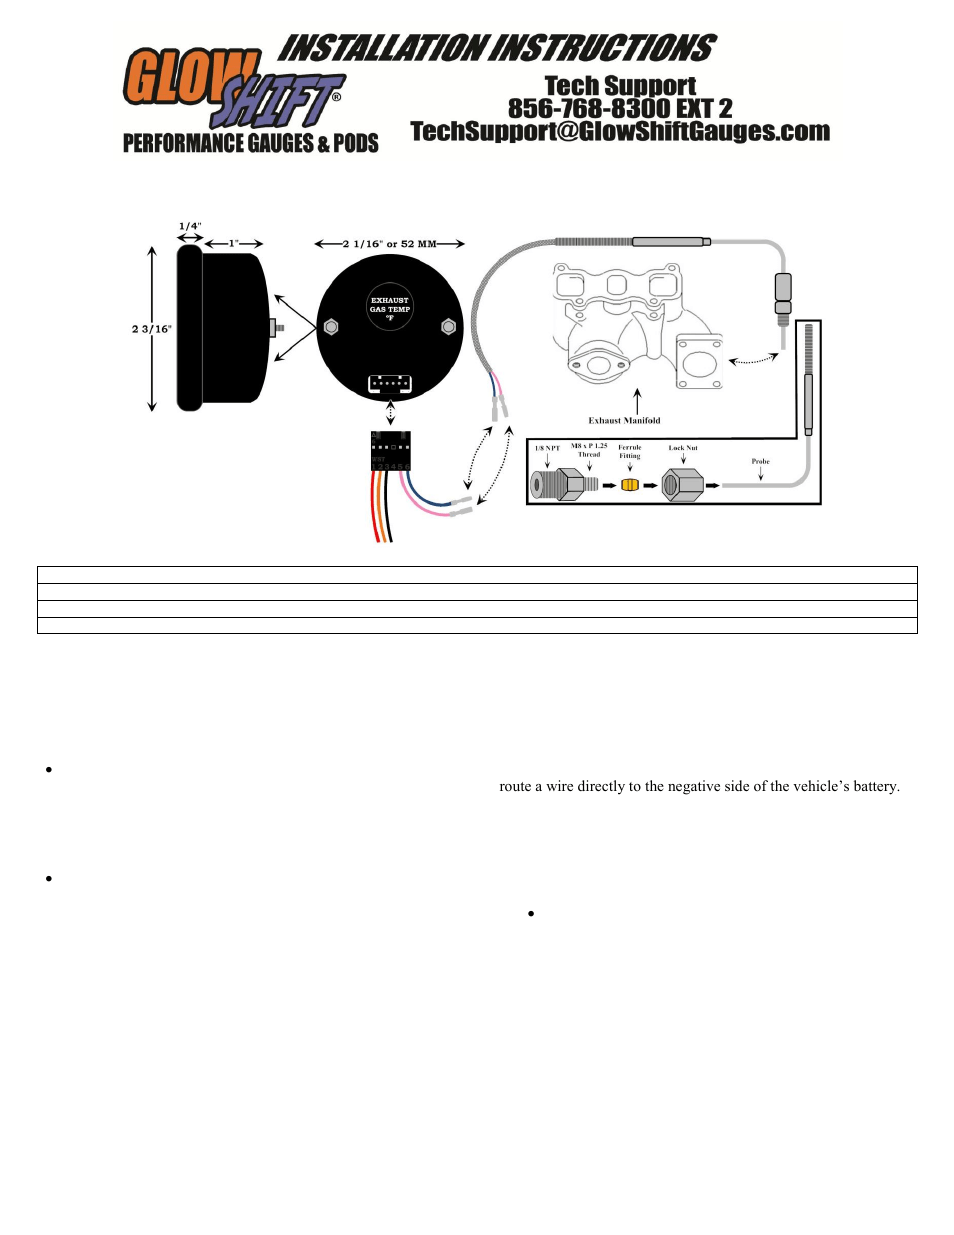 glowshift digital series pyrometer egt gauge page1?resize\\\=665%2C861 glowshift gauge wiring diagram system 3 wiring diagrams glowshift air fuel ratio gauge wiring diagram at gsmportal.co